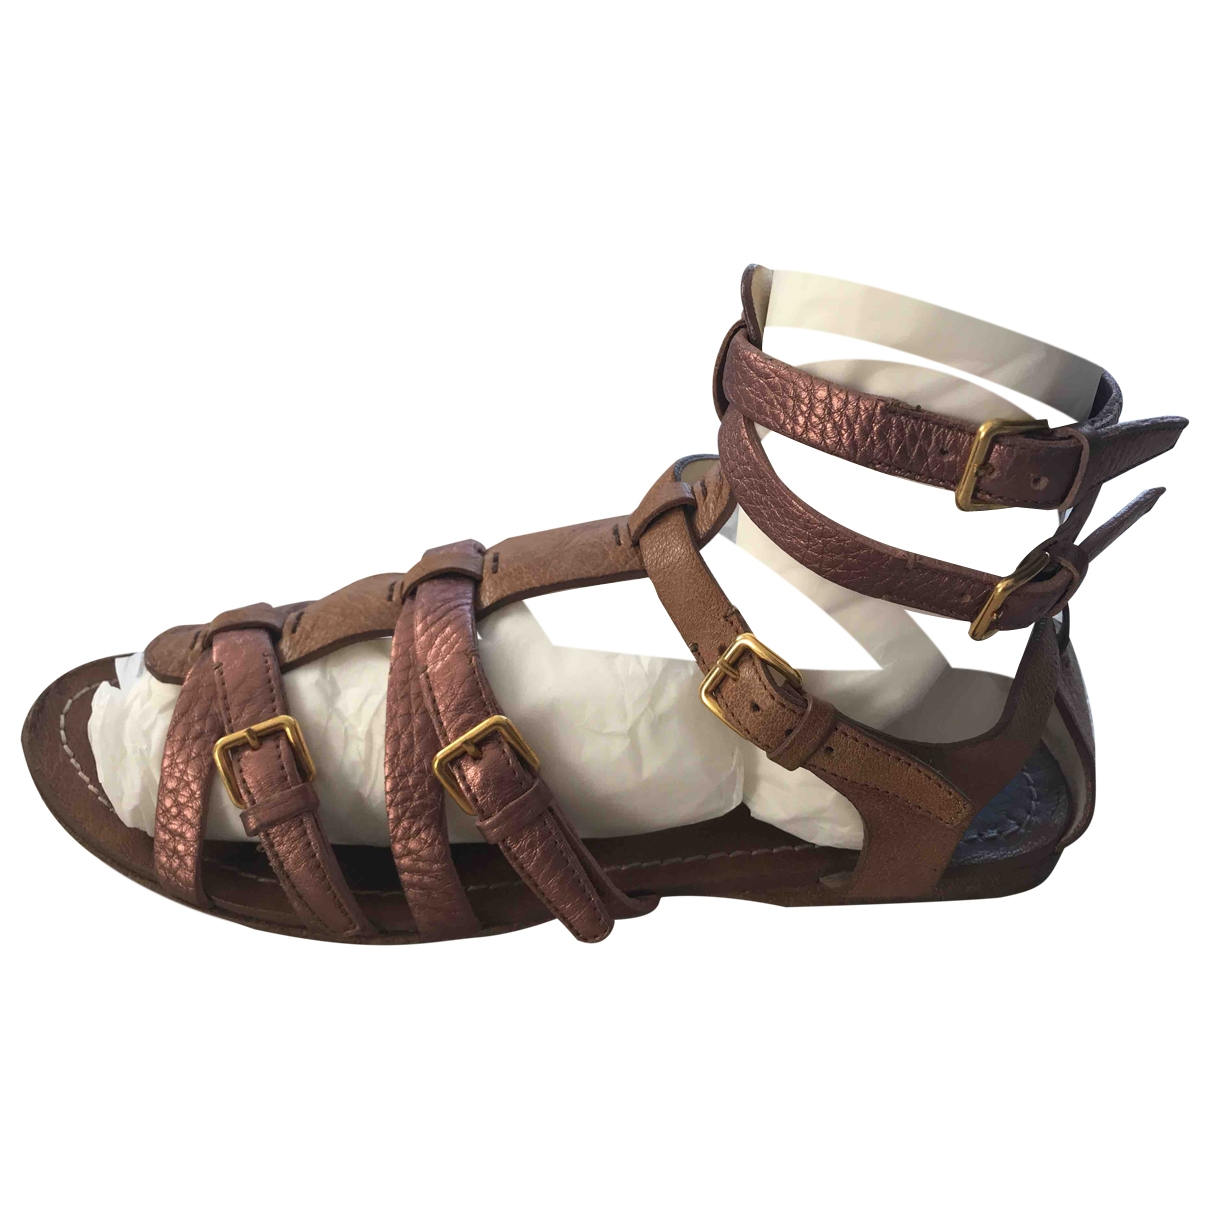 Miu Miu \N Brown Leather Sandals for Women 39 EU